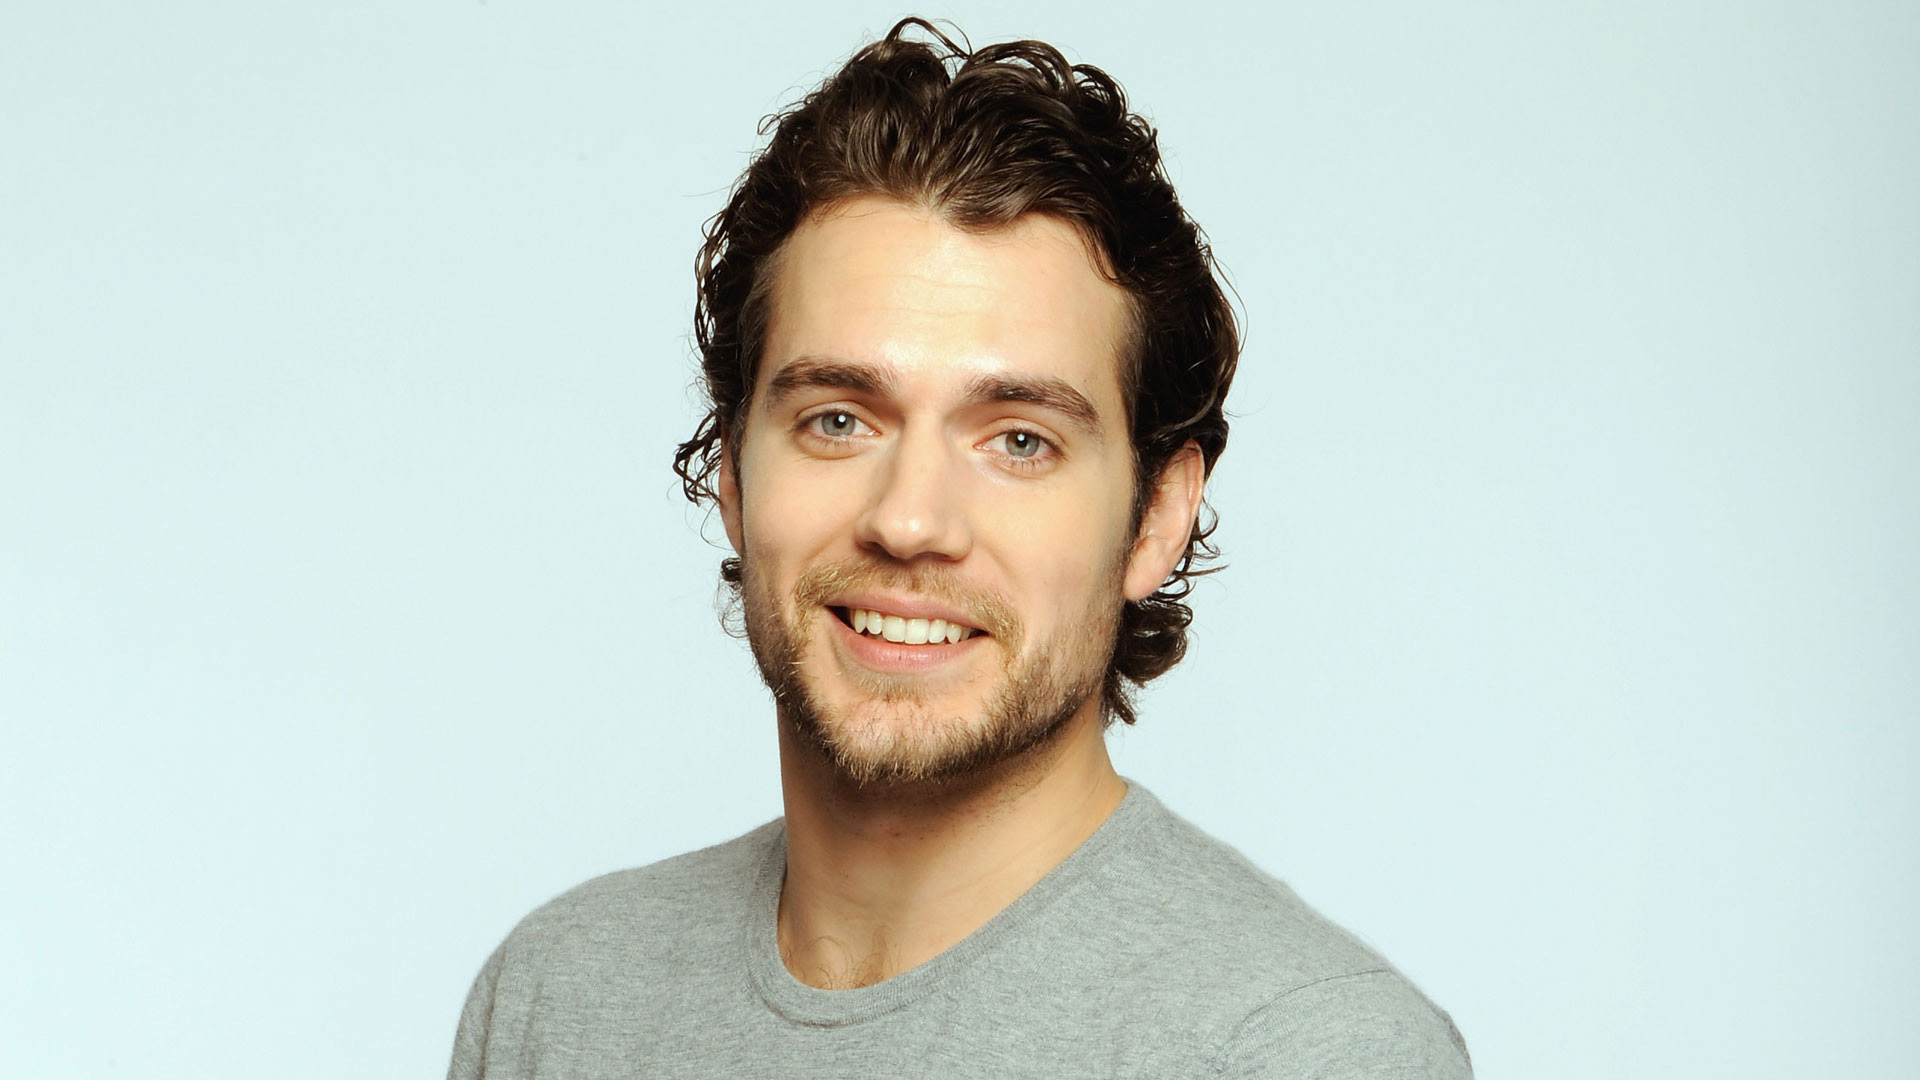 Henry William Dalgliesh Cavill ˈ k æ v əl born 5 May 1983 is a British actor He began his career with roles in the feature adaptations of The Count of